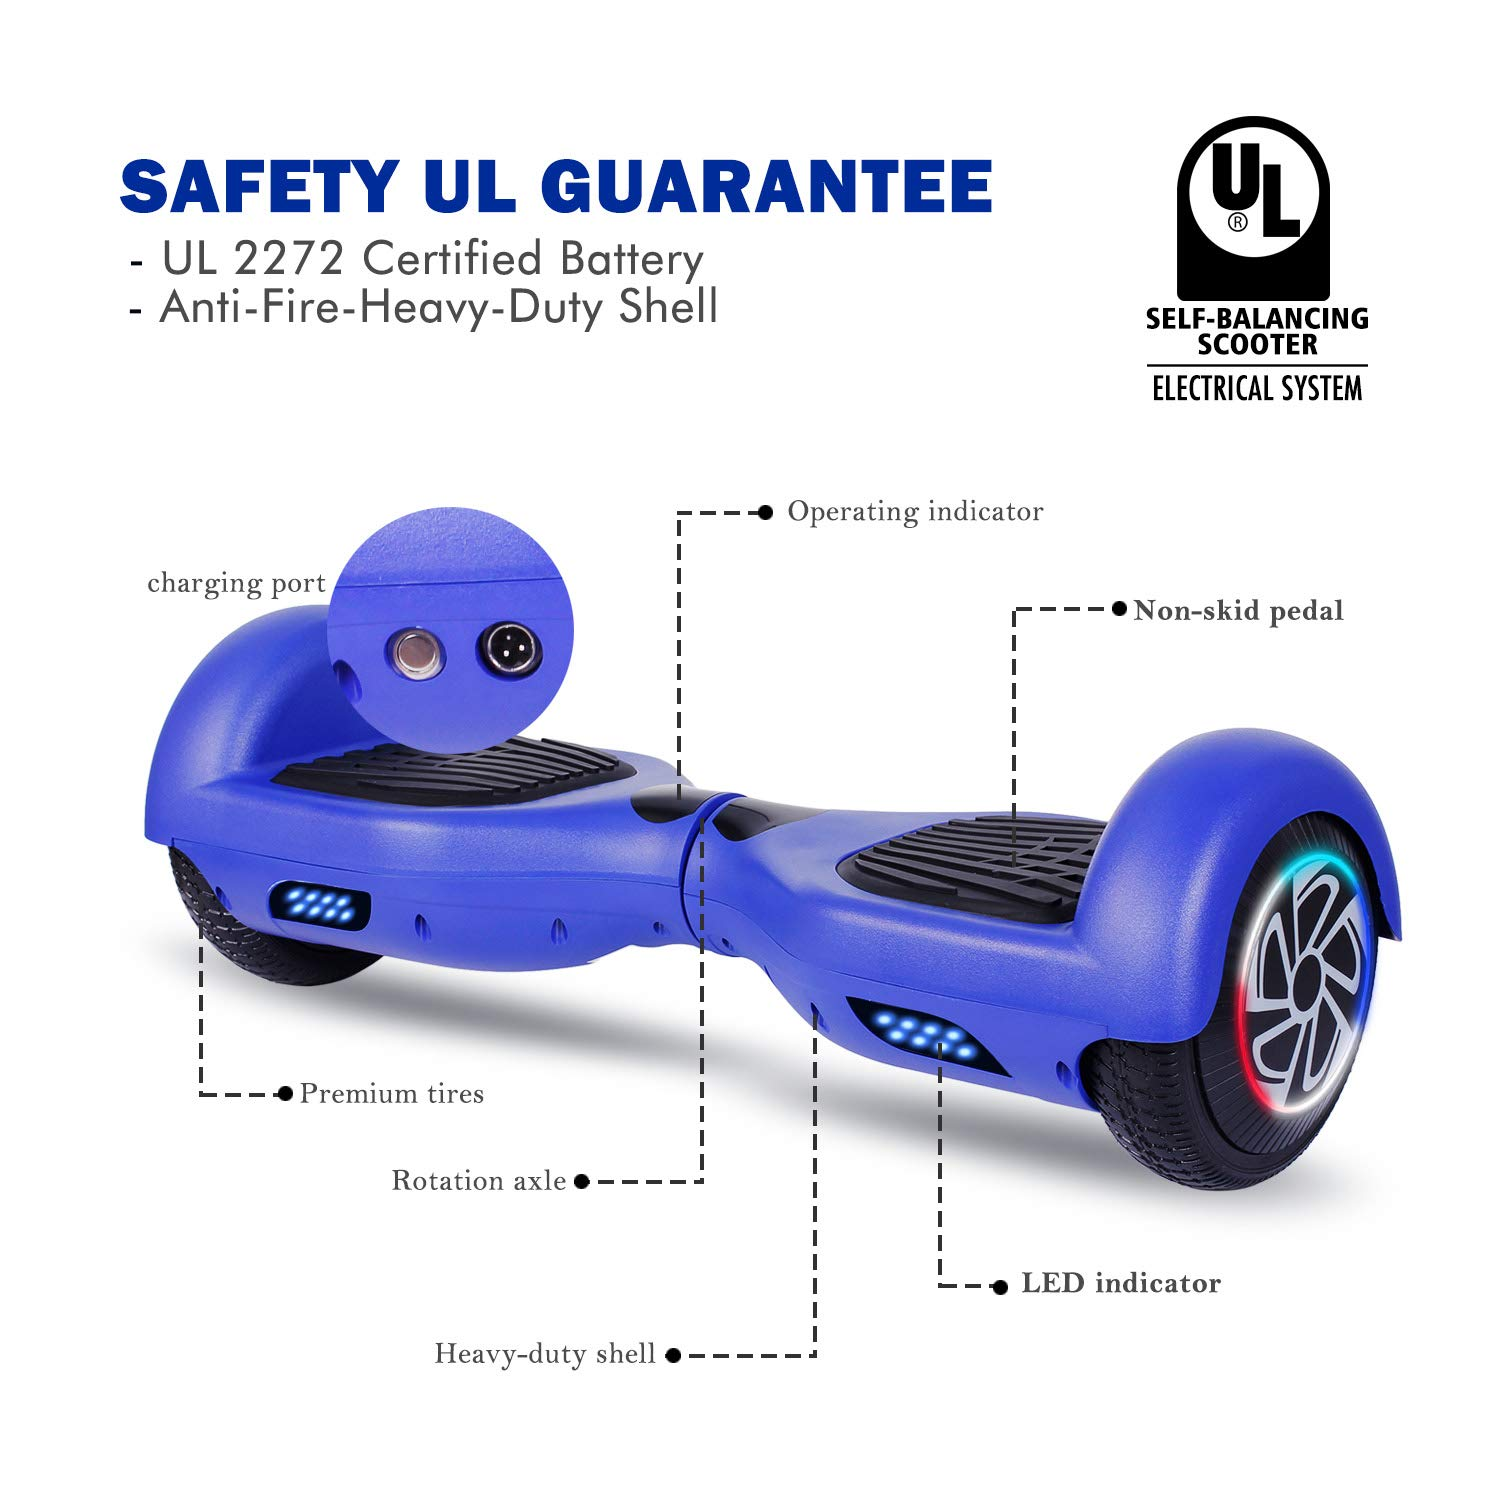 SISIGAD Hoverboard, Self Balancing Hoverboard, 6.5'' Two-Wheel Self Balancing Scooter, Smart Hover Board for Kids Gift, Adult Electric Scooter, with LED Lights and Free Carrying Bag UL2272 Certified by SISIGAD (Image #2)